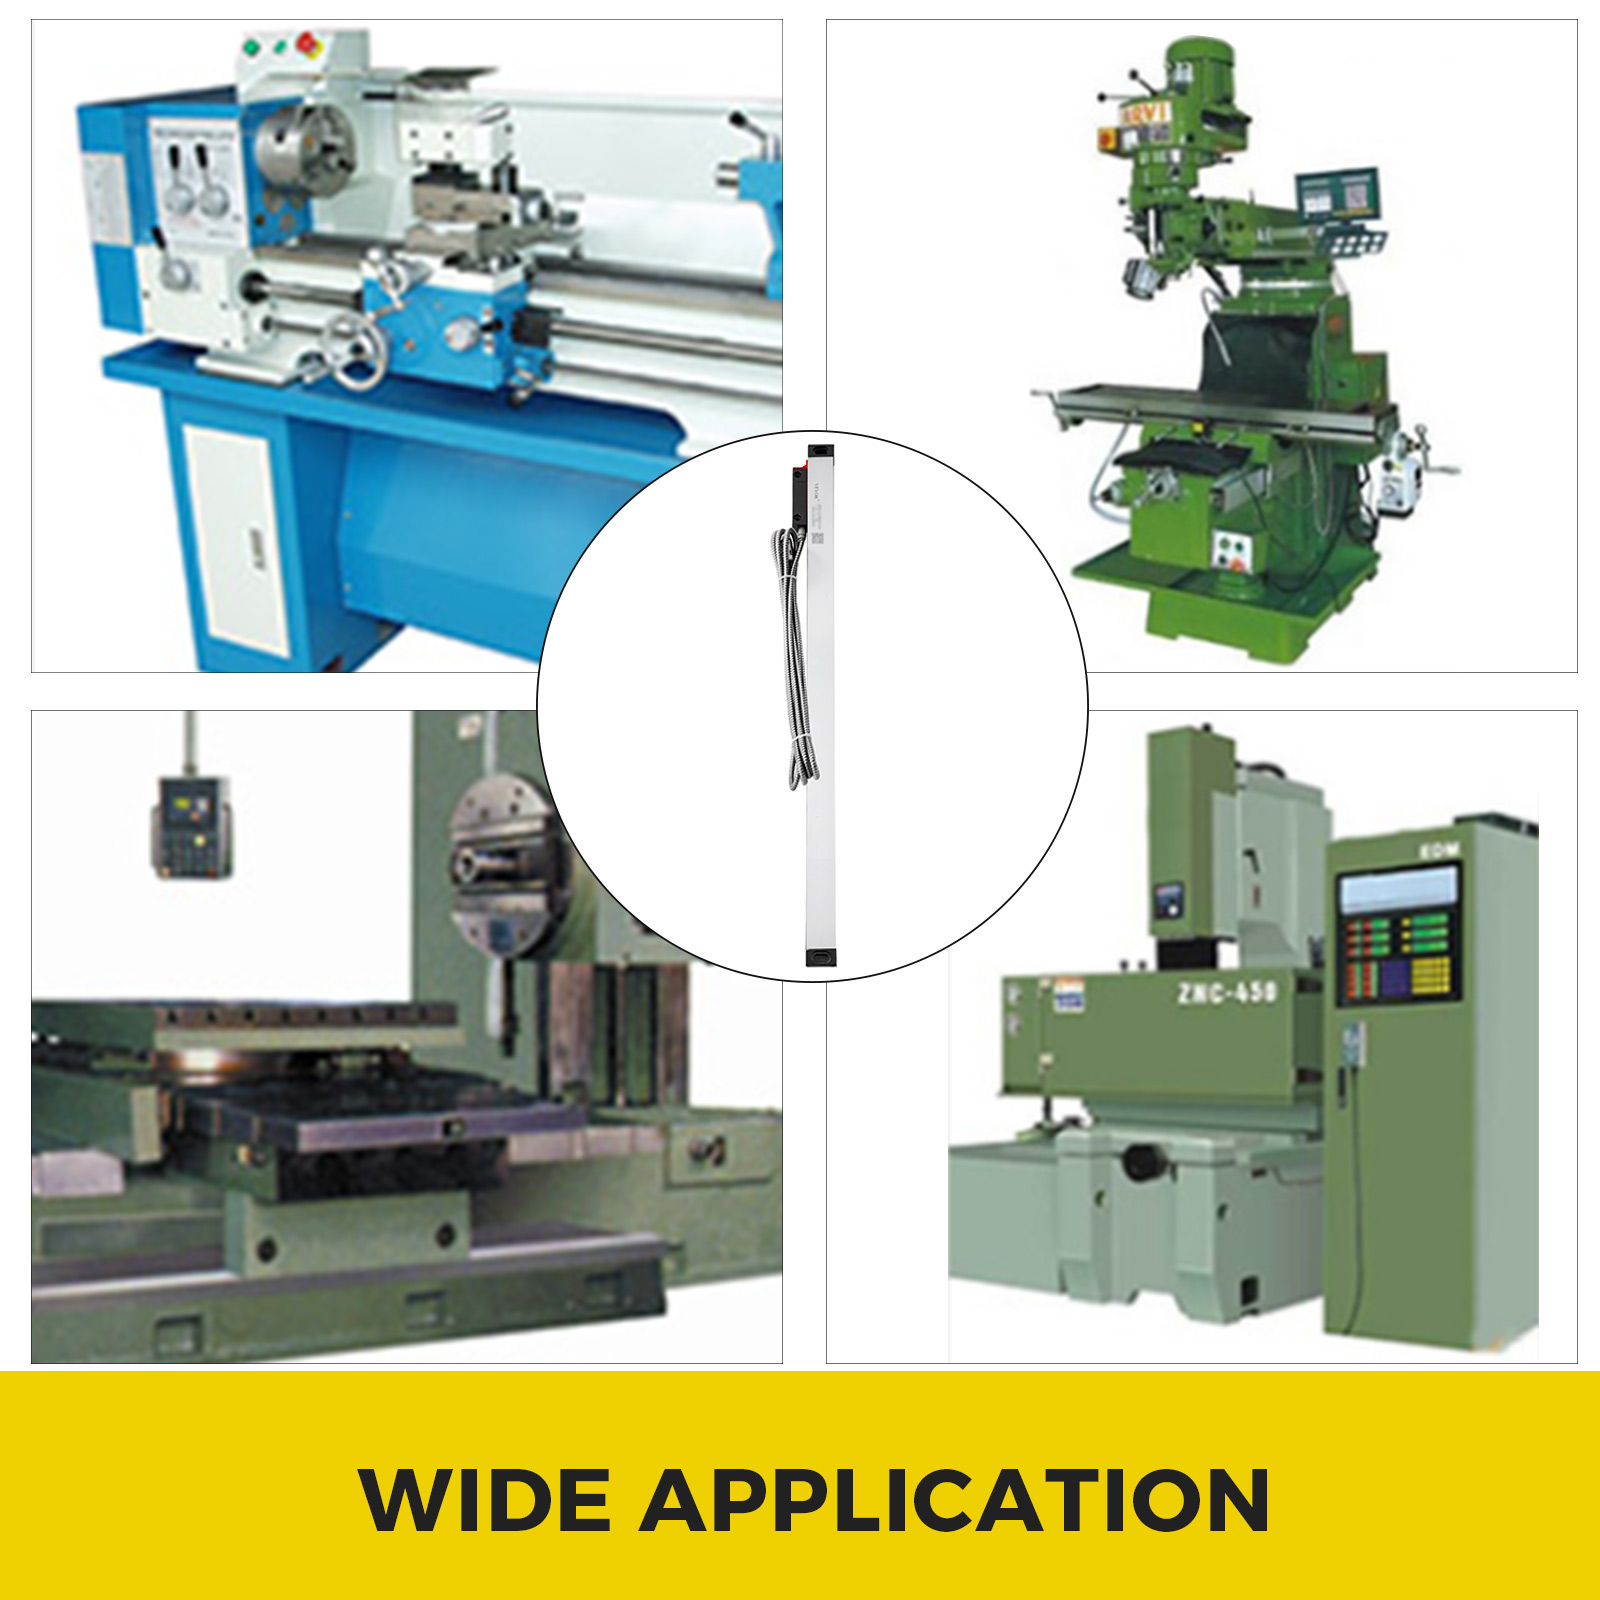 2-3-Axis-Digital-Readout-Linear-Scale-Double-Seal-5-Bearing-System-Grinding thumbnail 127